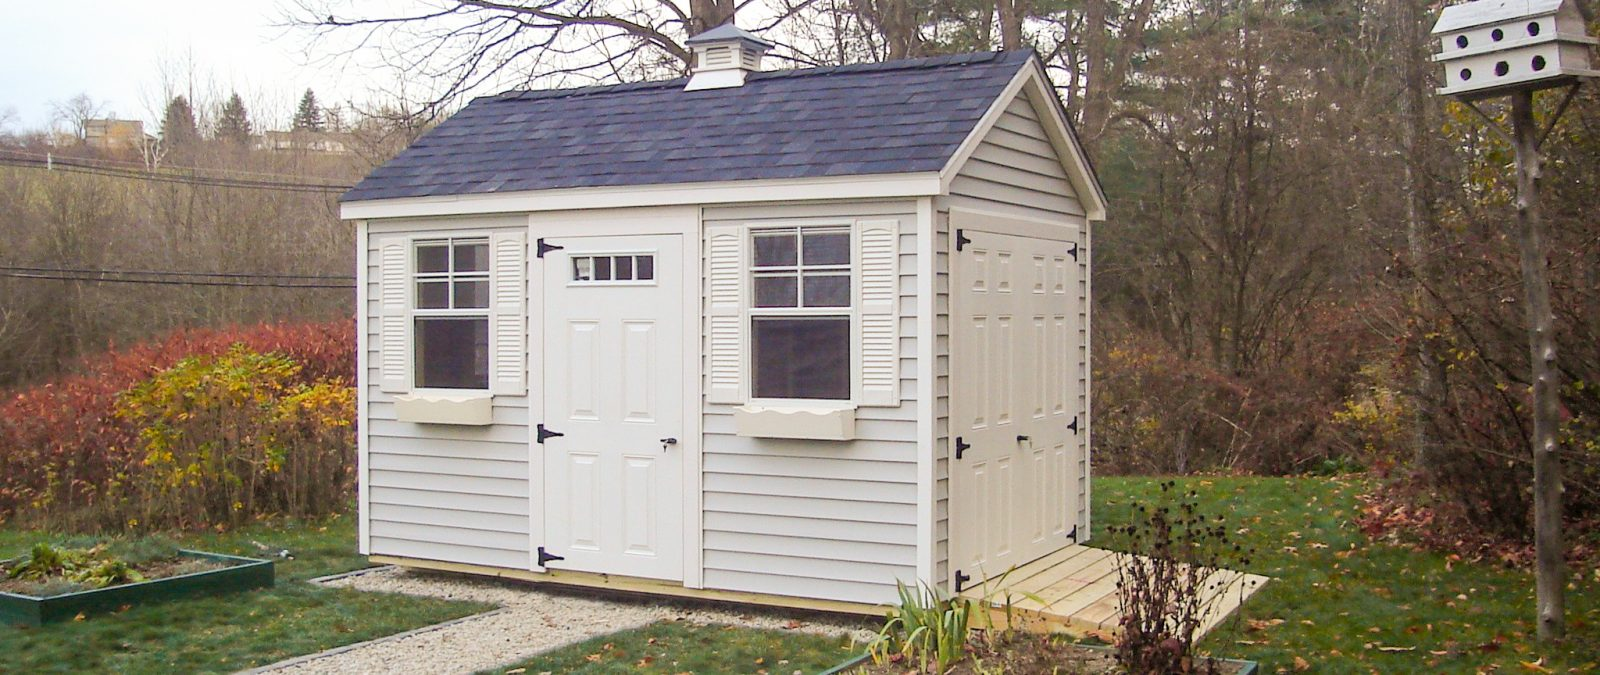 outdoor traditional storage shed